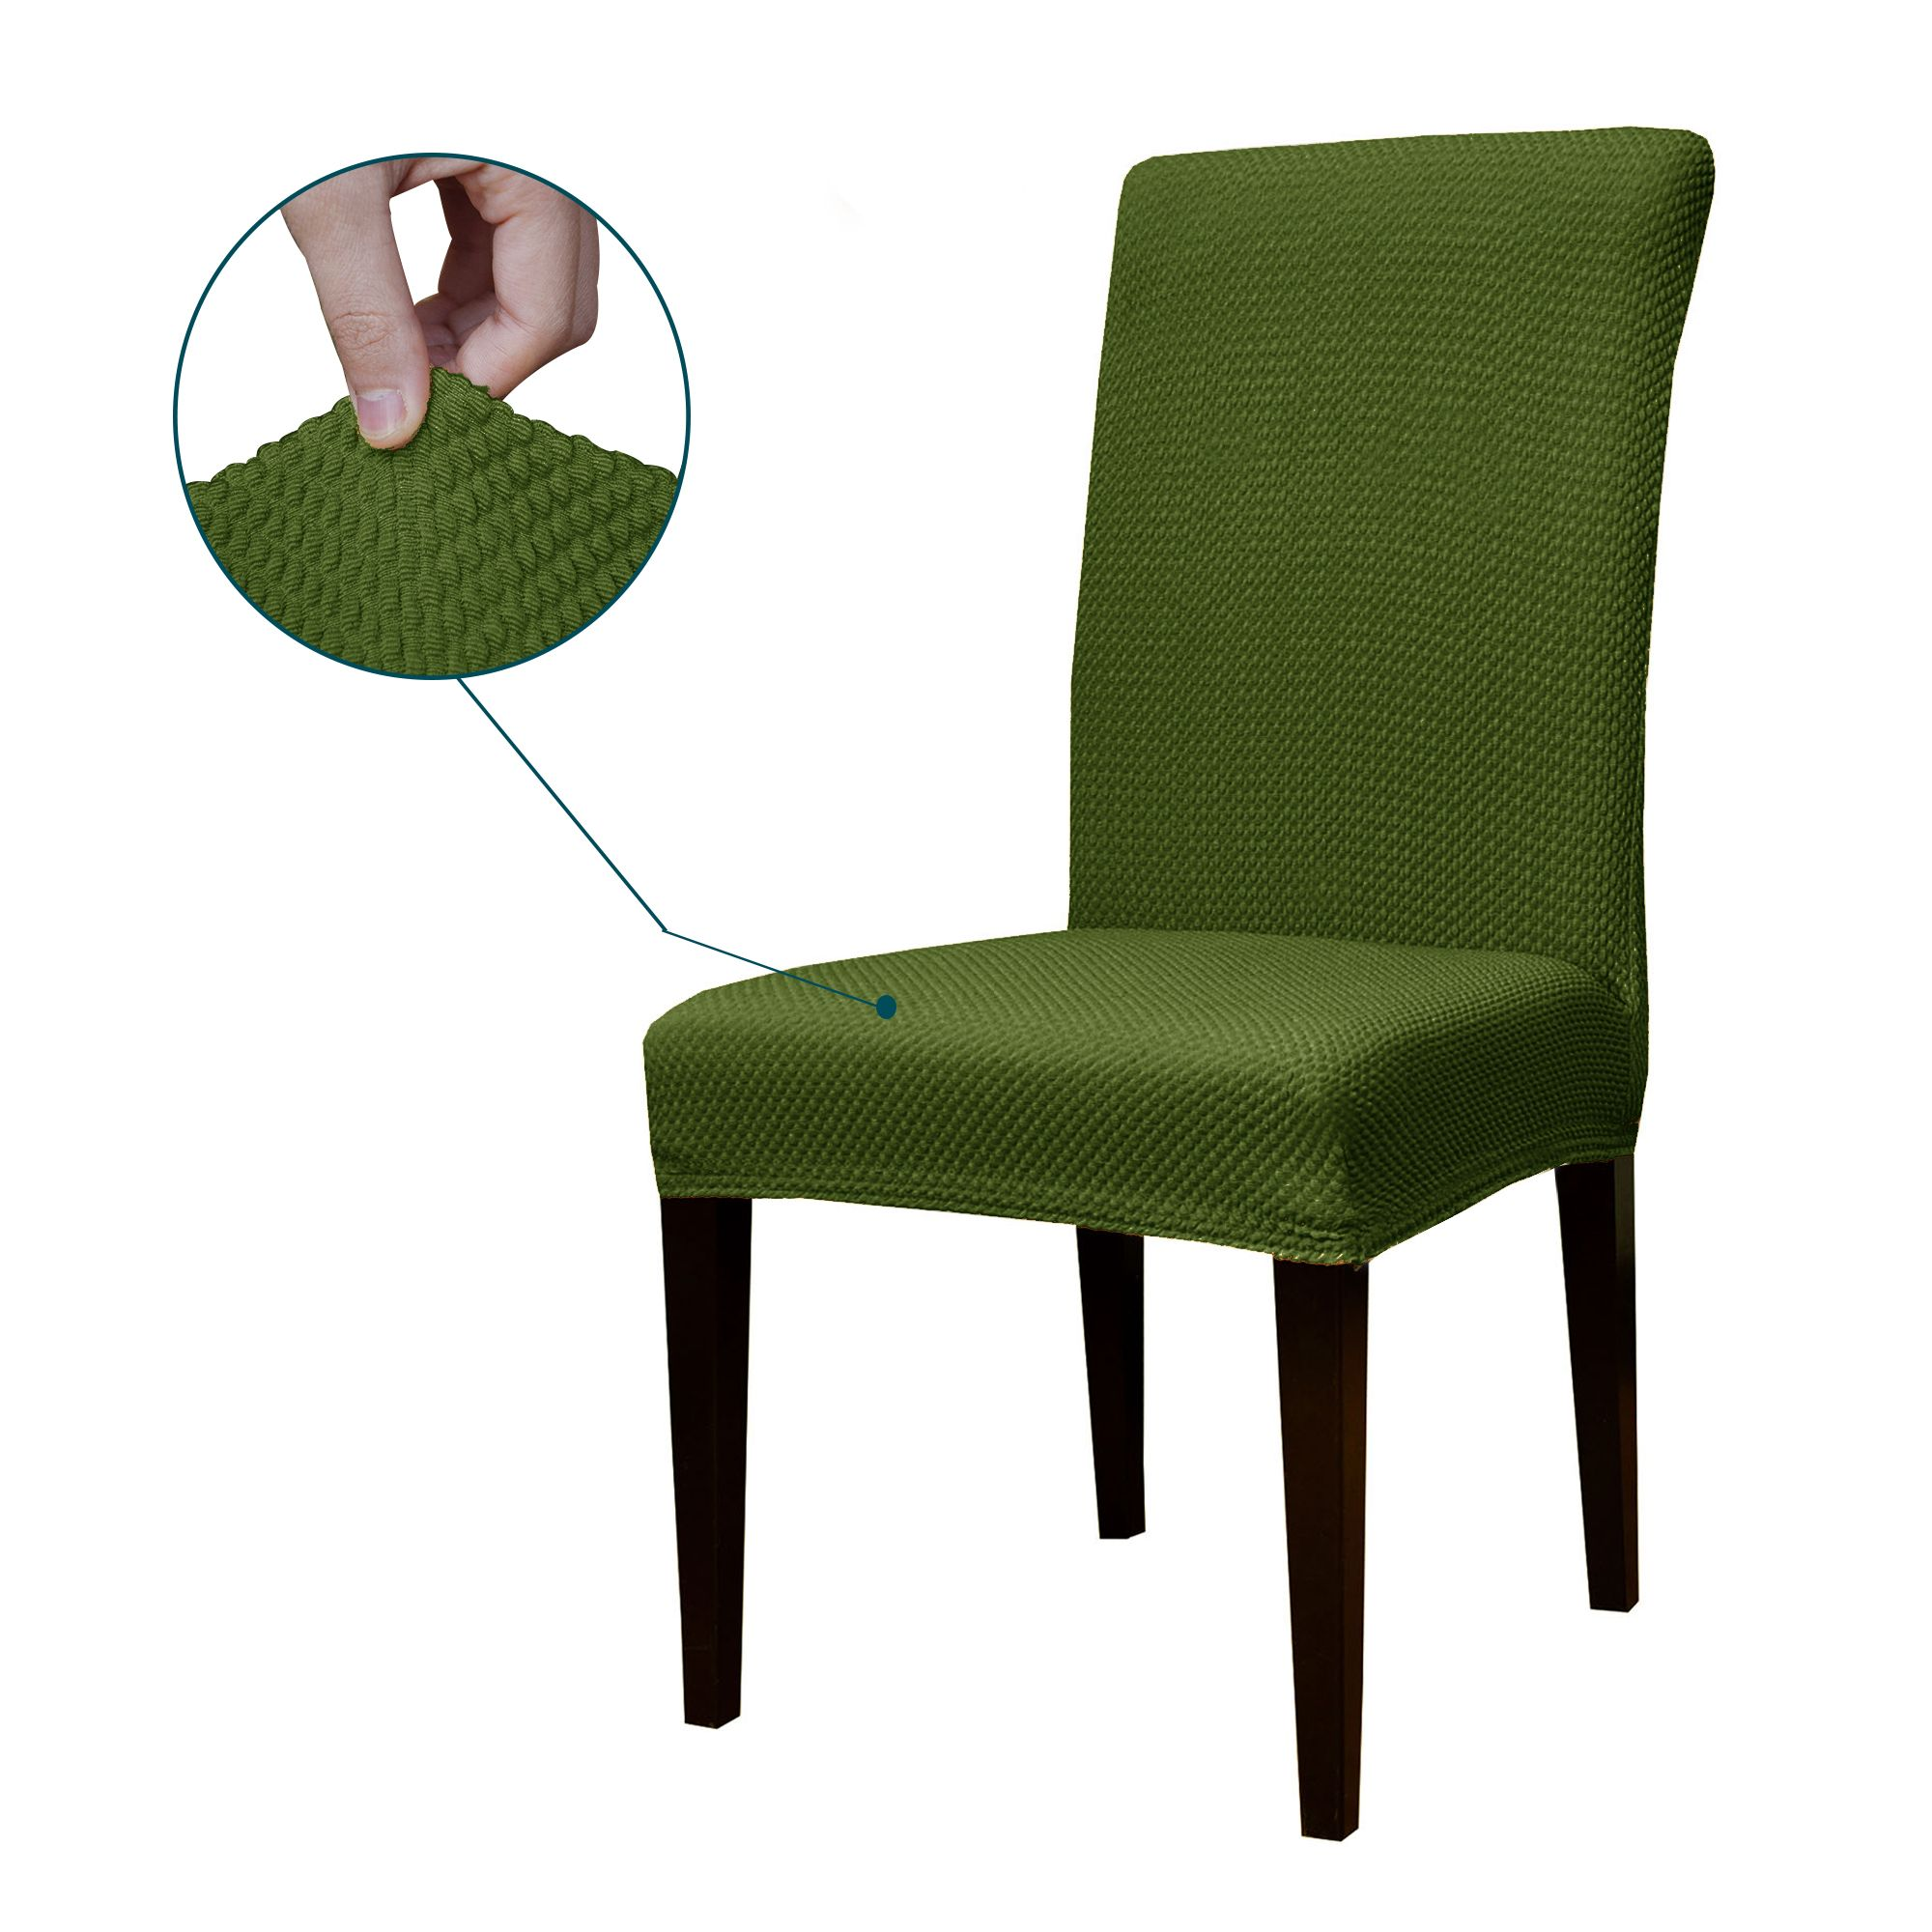 Dining Room Chairs Chair Slipcovers Rooms Covers Diamond Pattern Bleach Master Bedrooms Spandex Cold